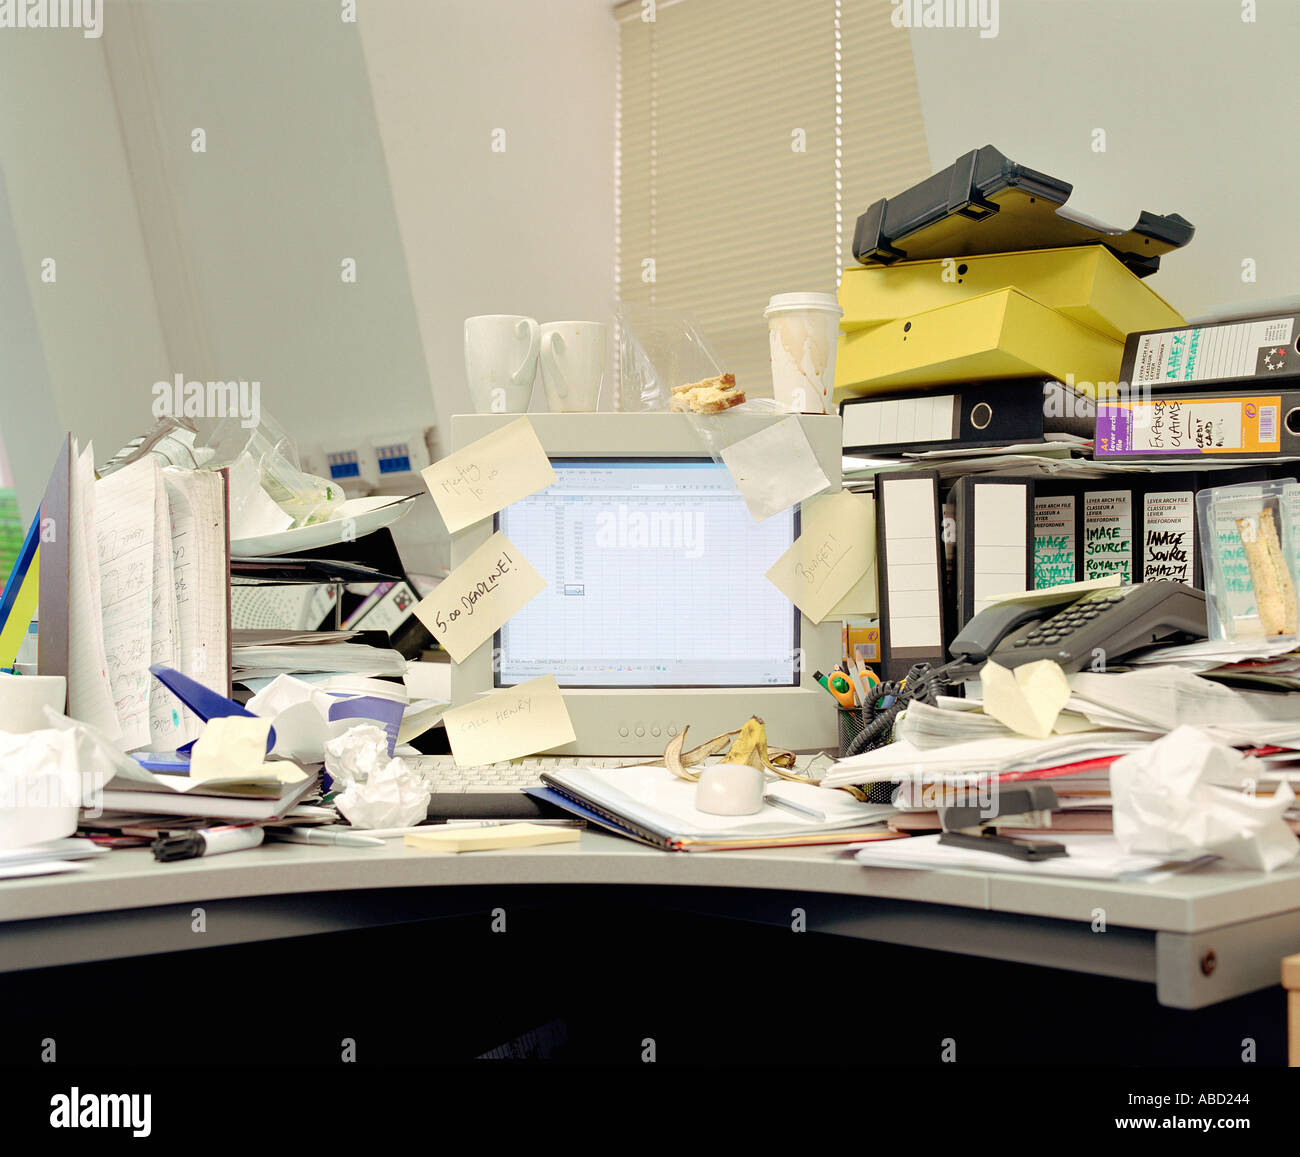 Messy Office: Messy Office Desk Stock Photo, Royalty Free Image: 774724